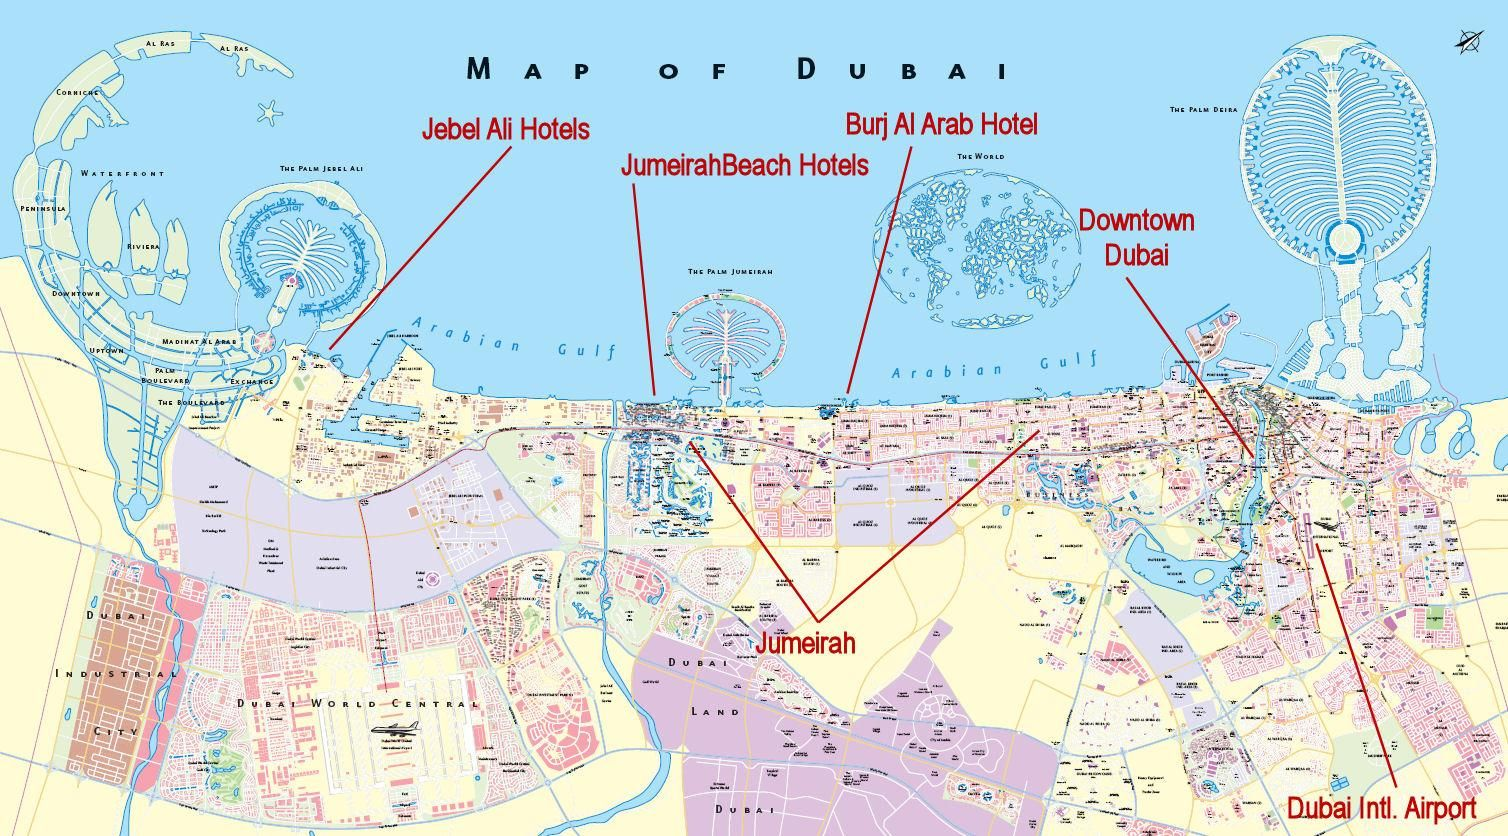 Complete Dubai City Map plus Travel Information Guide for